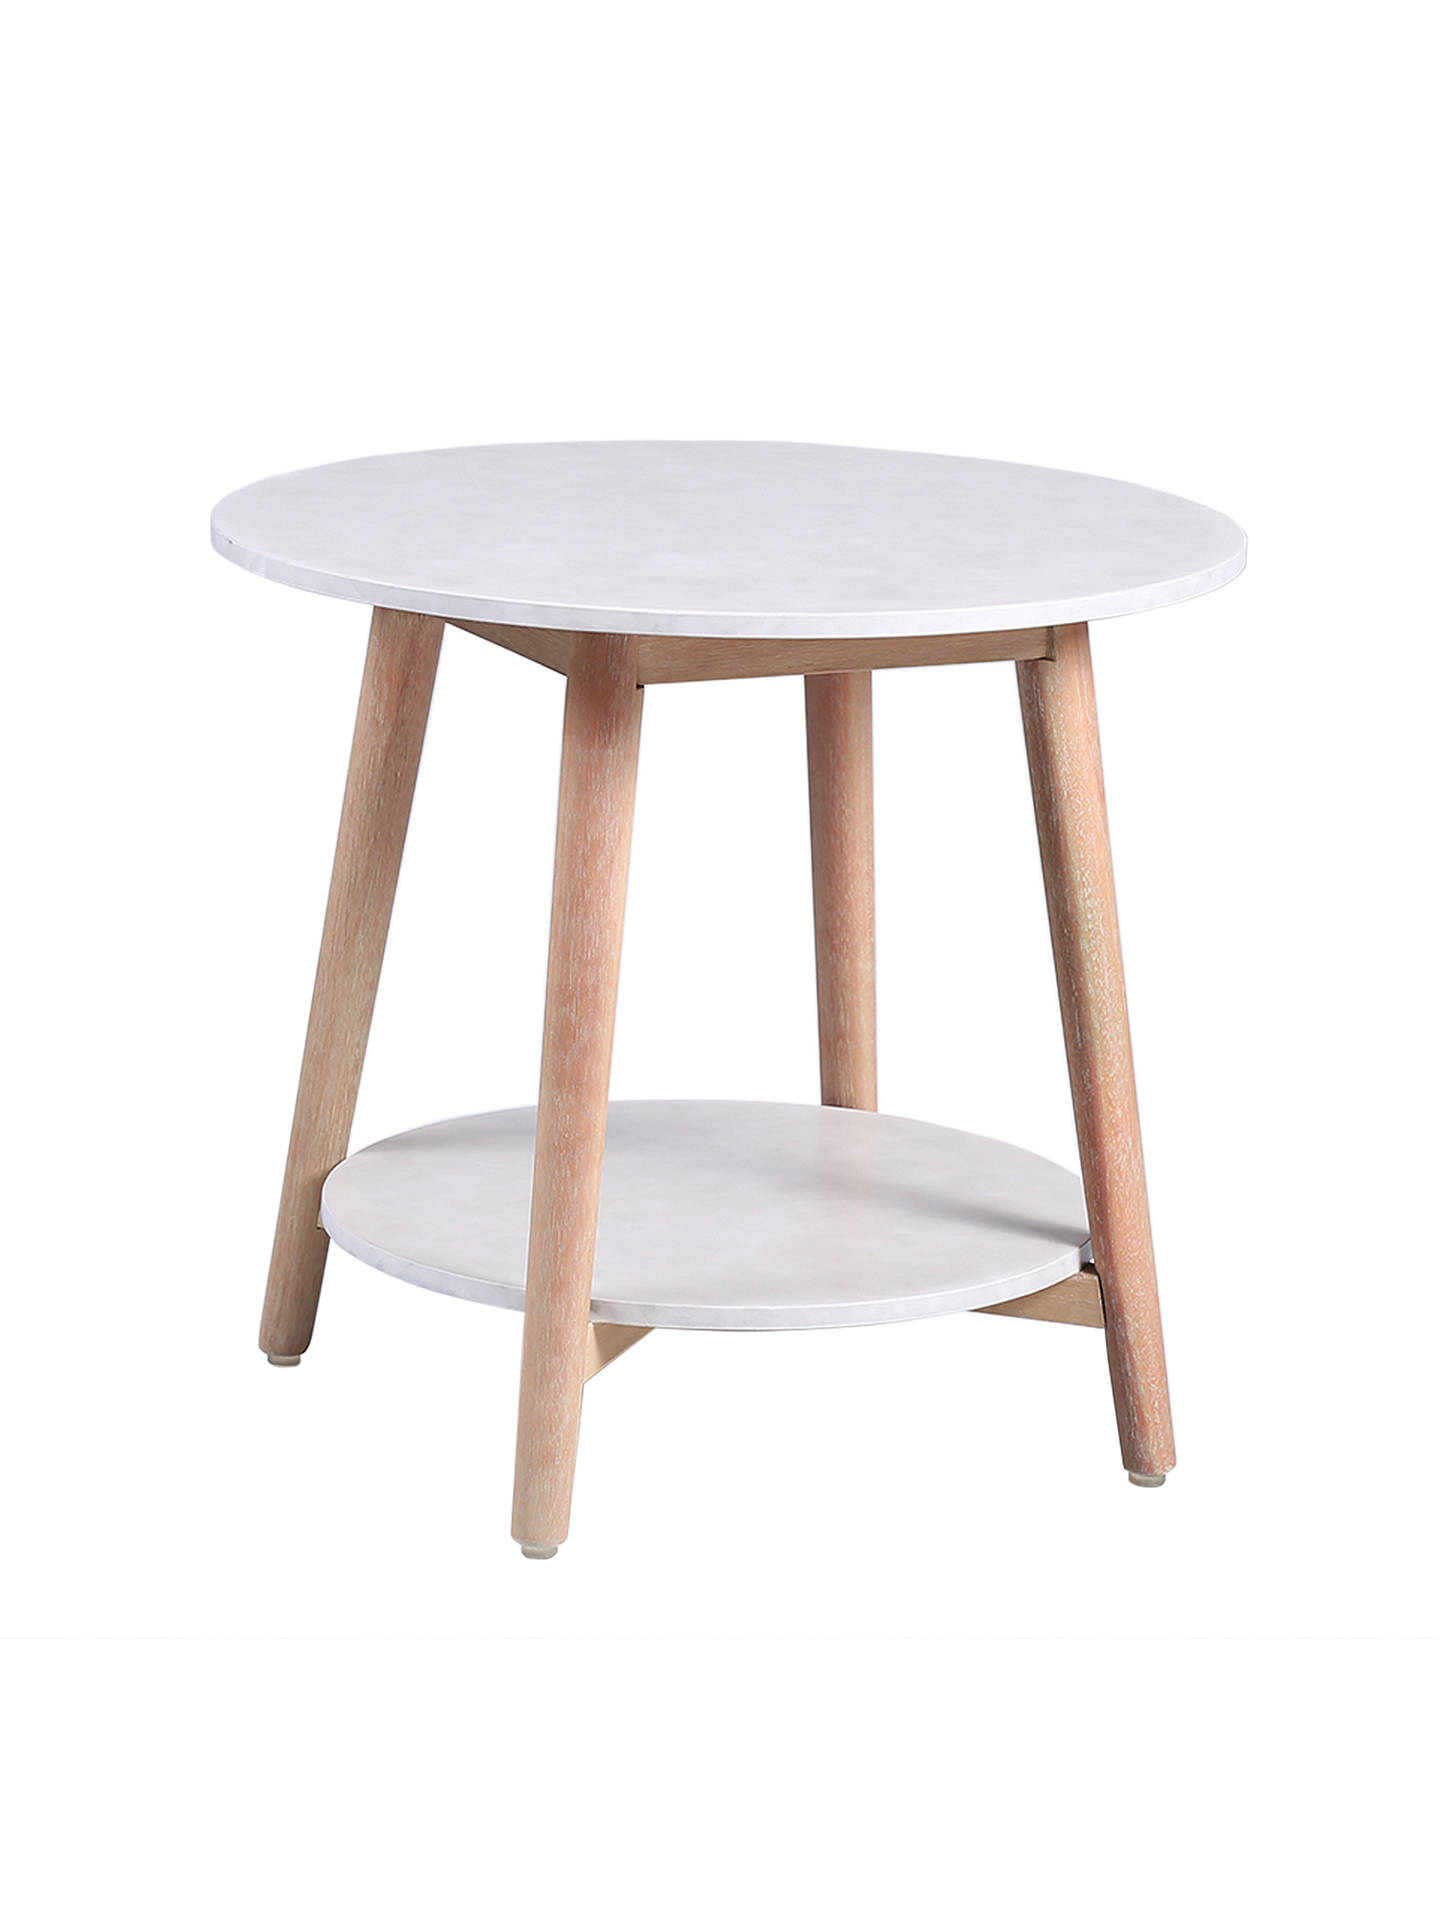 Croft Collection Iona Round Garden Side Table Fsc Certified Eucalyptus Wood Natural